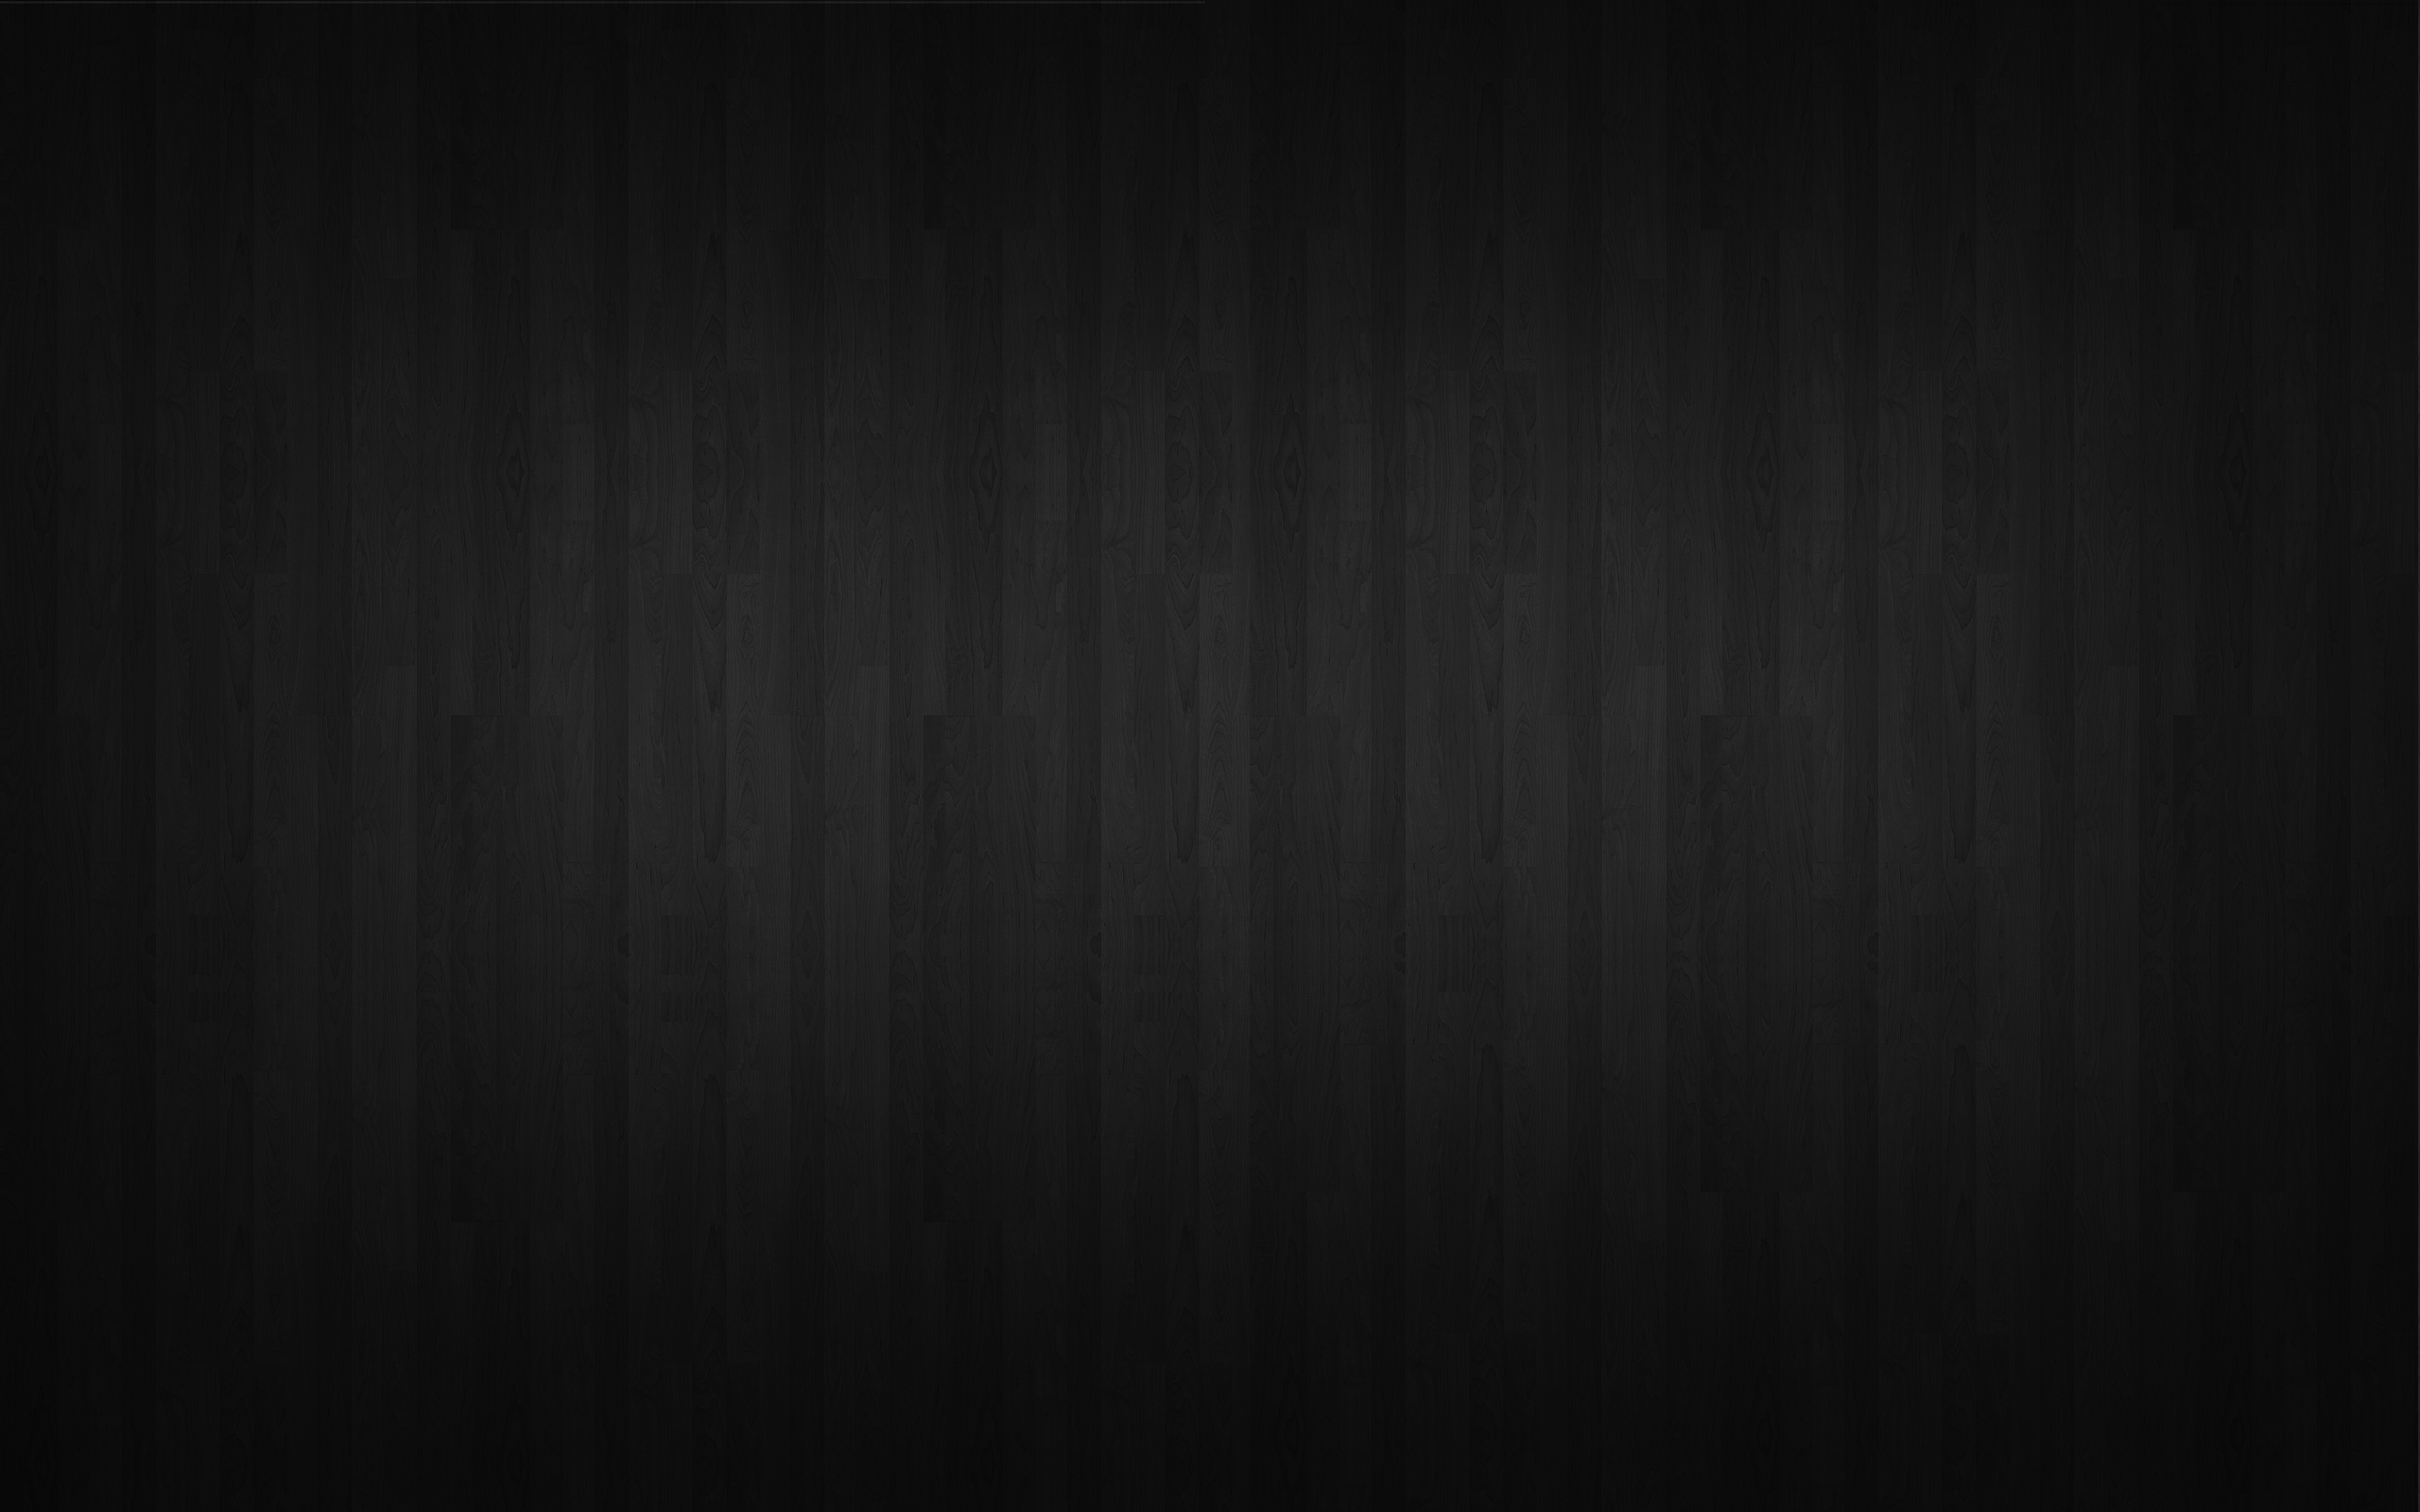 Wallpapers Black Wood 2560×1600 Wallpaper